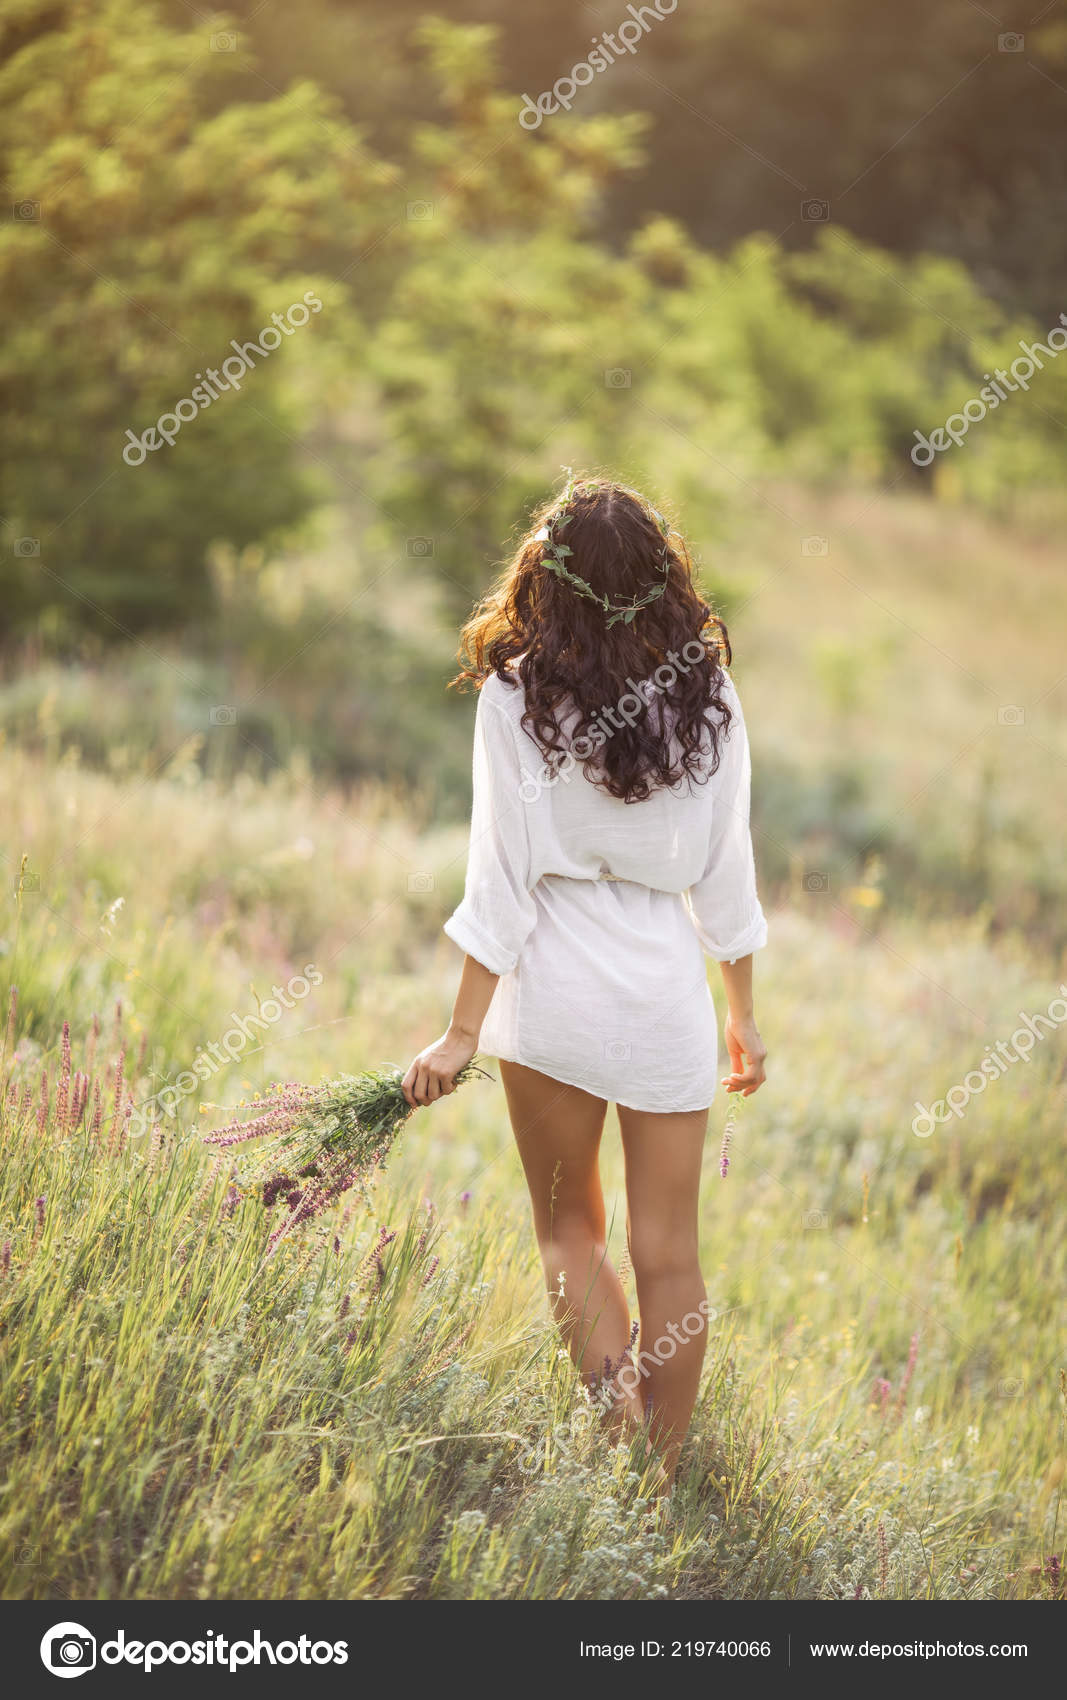 Natural Beauty Girl With Bouquet Of Flowers Outdoor In Freedom Enjoyment Concept Stock Photo C Dimabl 219740066